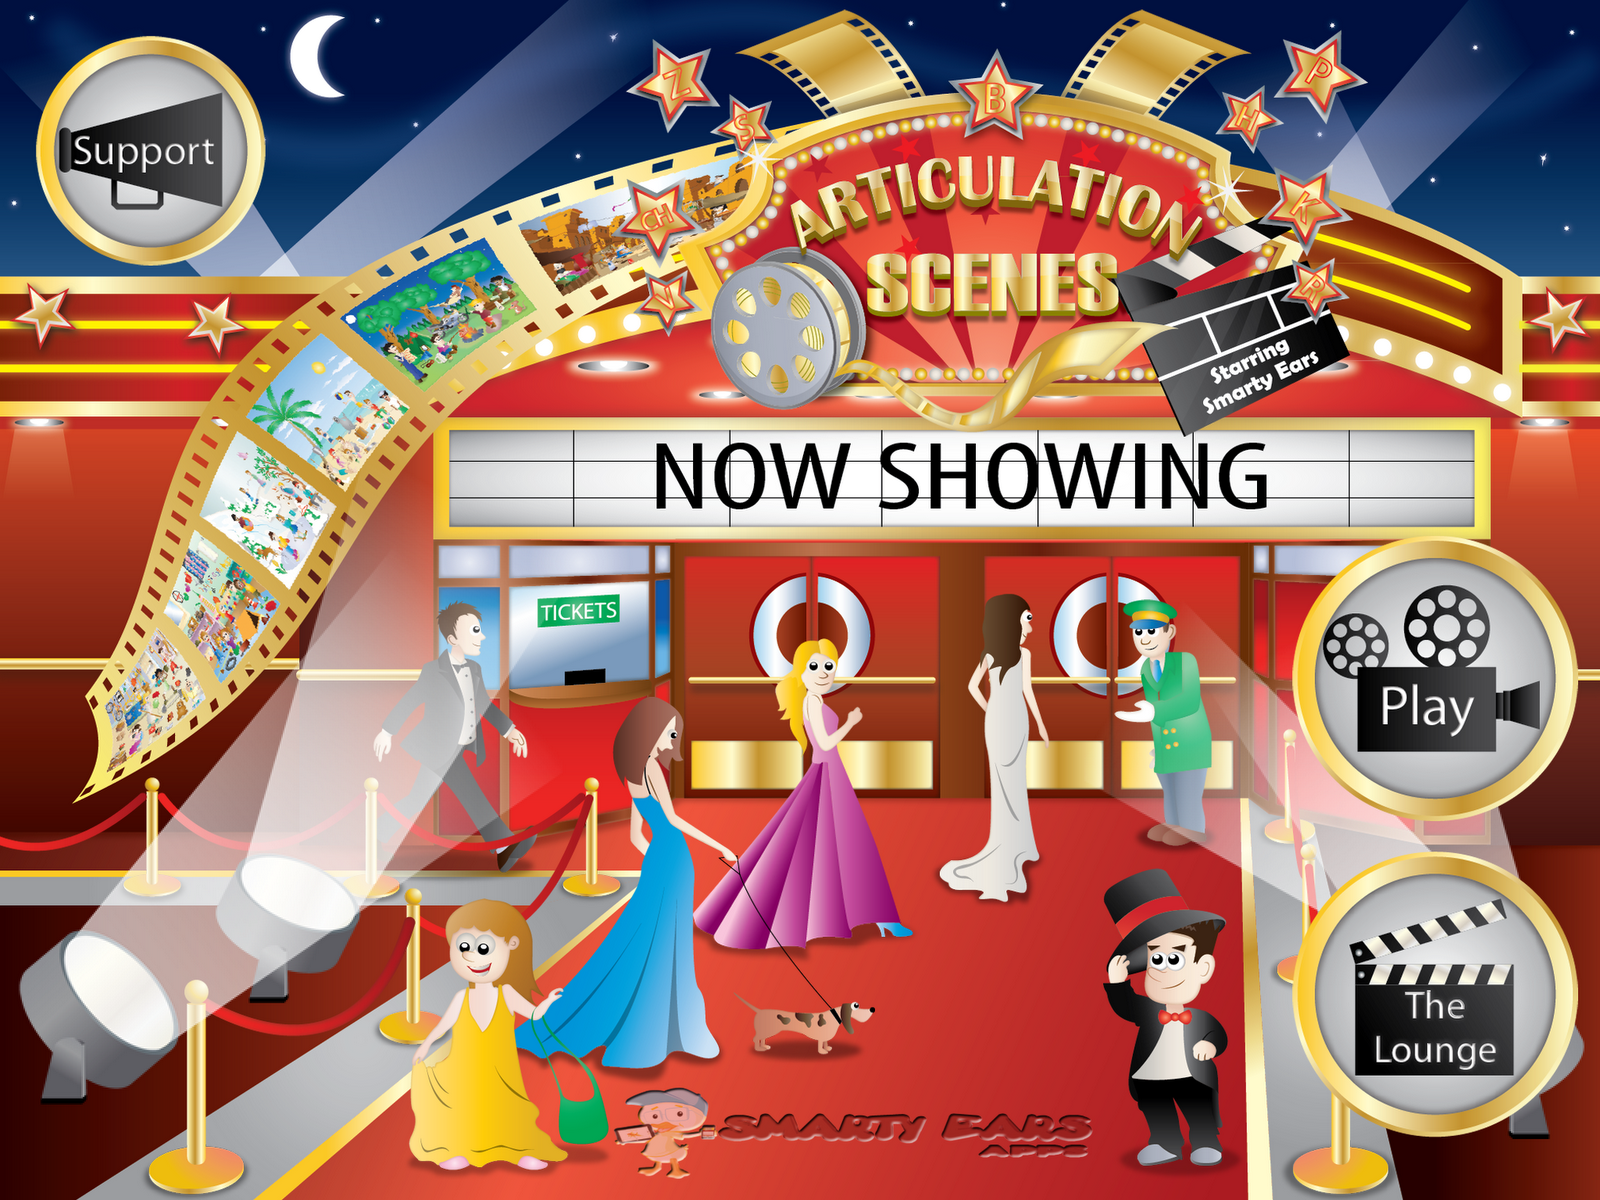 Show scenes page - Articulation Scenes Review